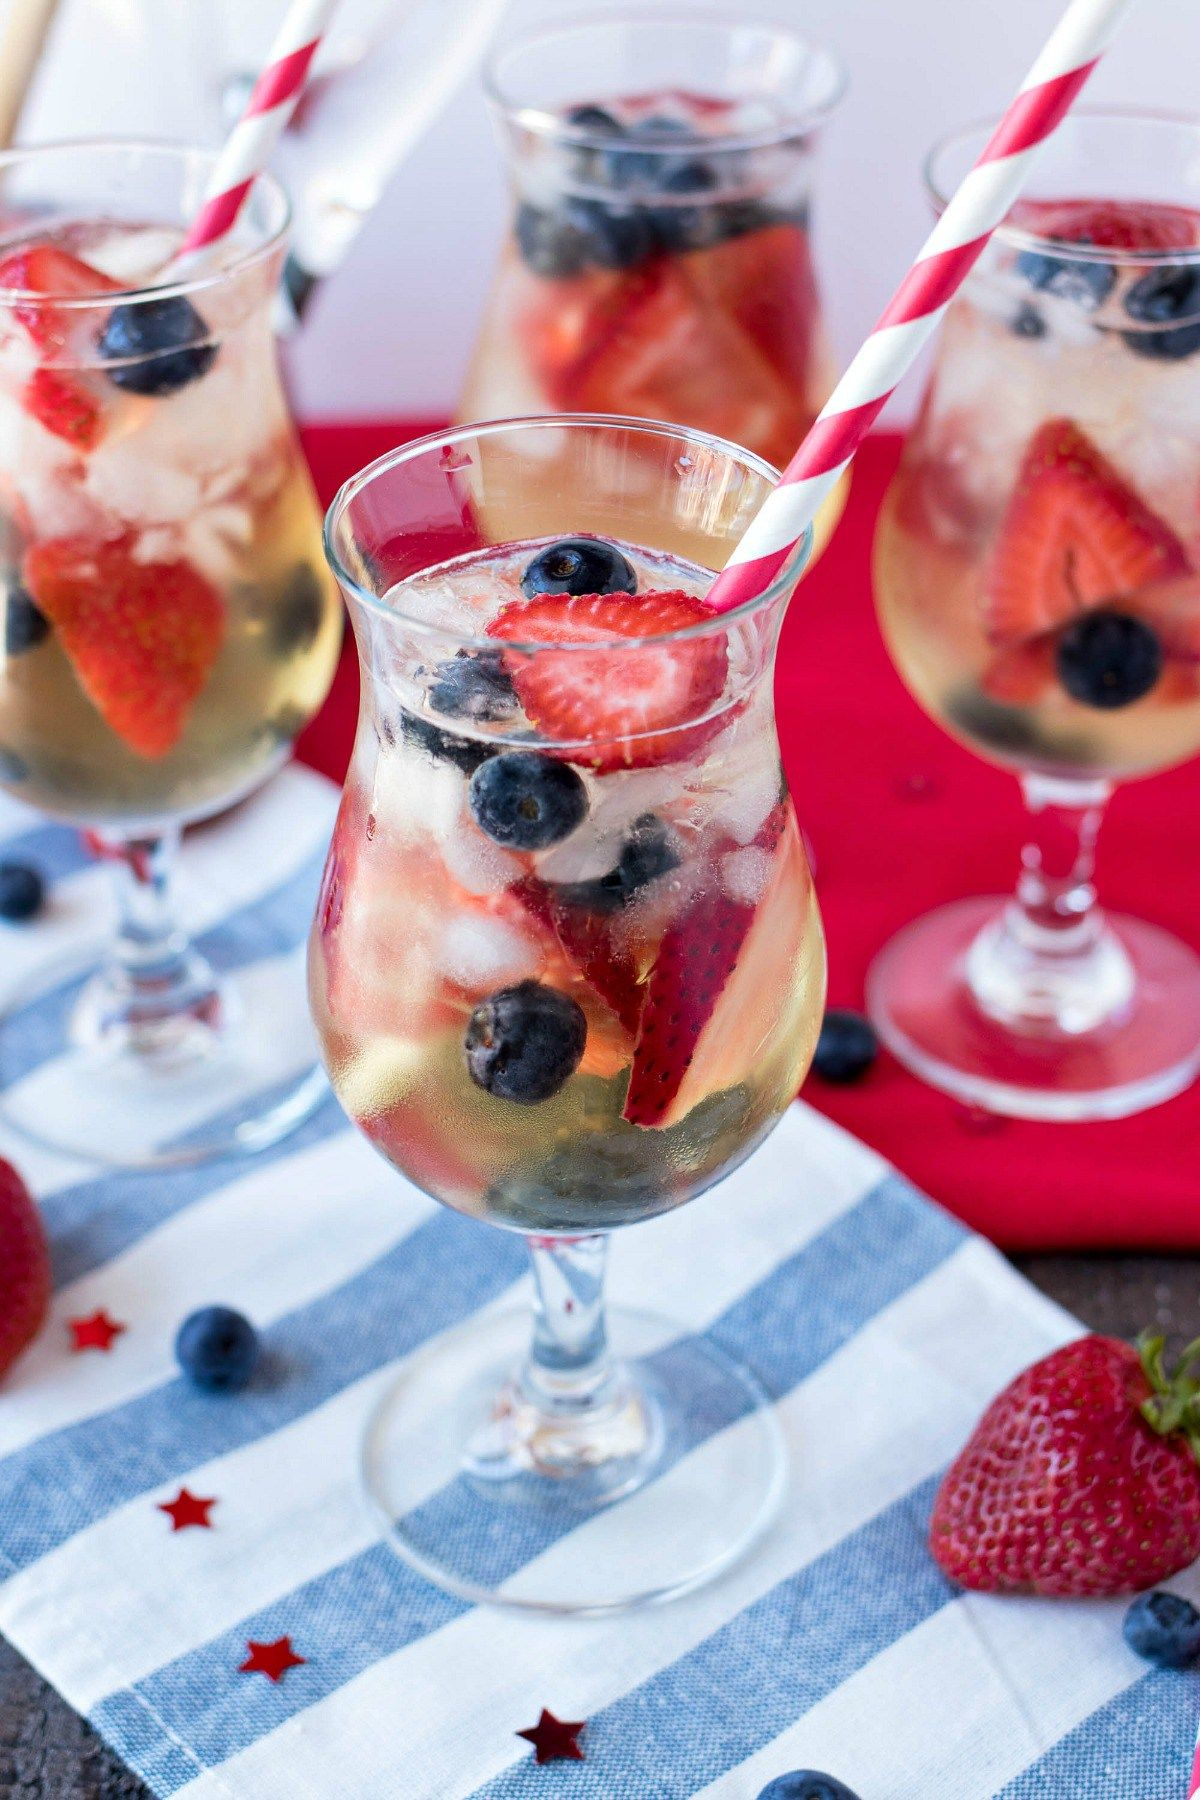 Red White Blue Sangria A Refreshing White Sangria Made With Dry White Wine Brandy Best White Sangria Recipe Easy Sangria Recipes 4th Of July Cocktails